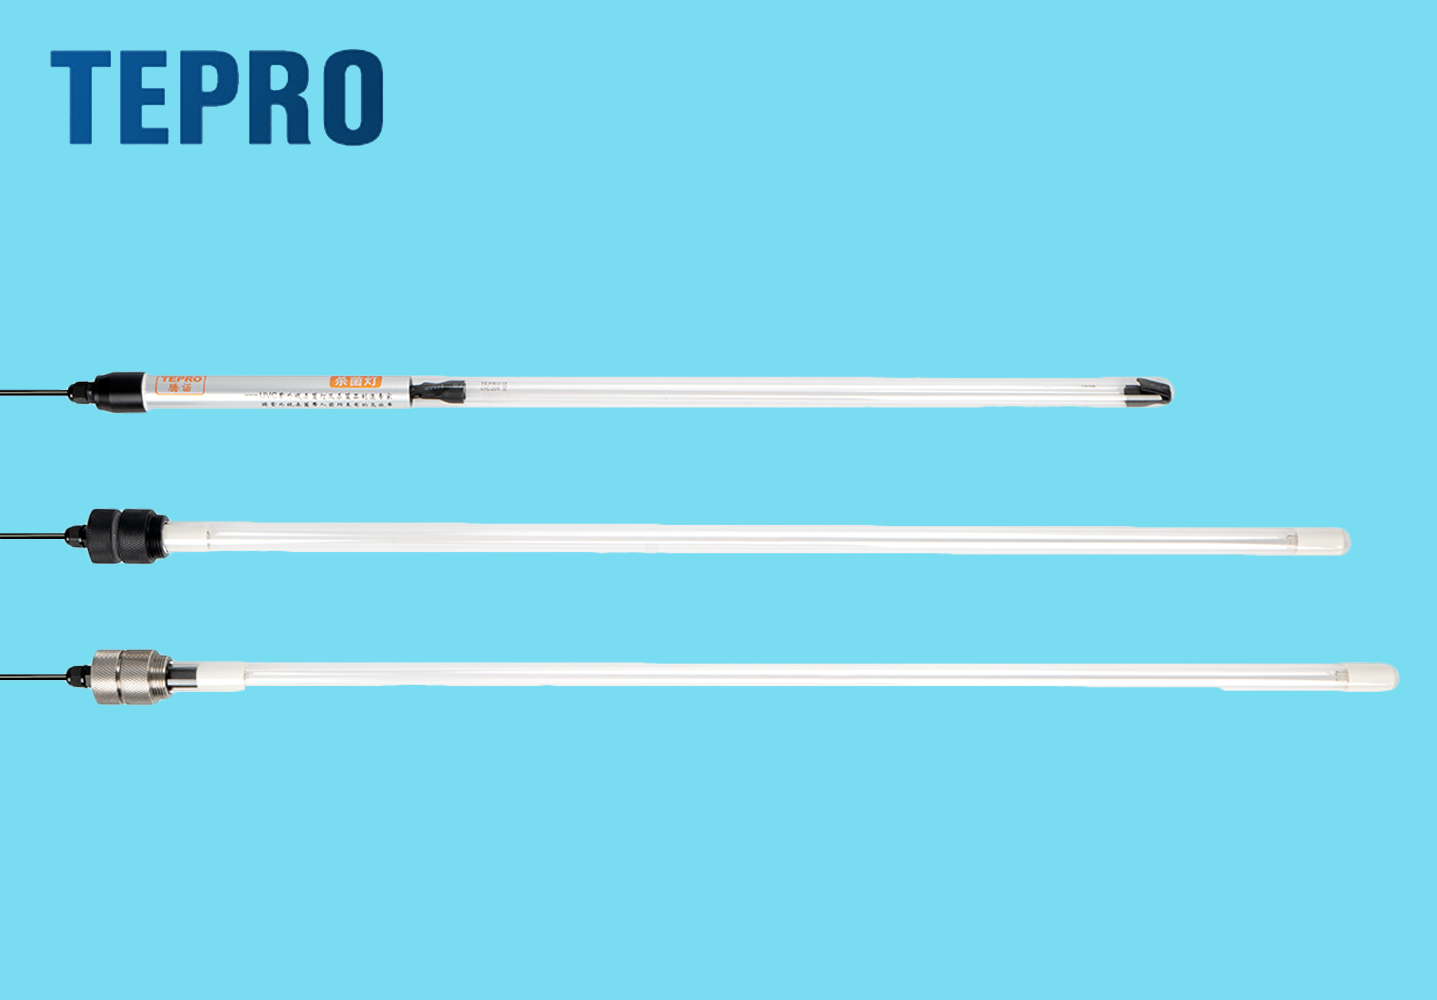 Tepro submarine uv black light fluorescent tubes for business for home-1